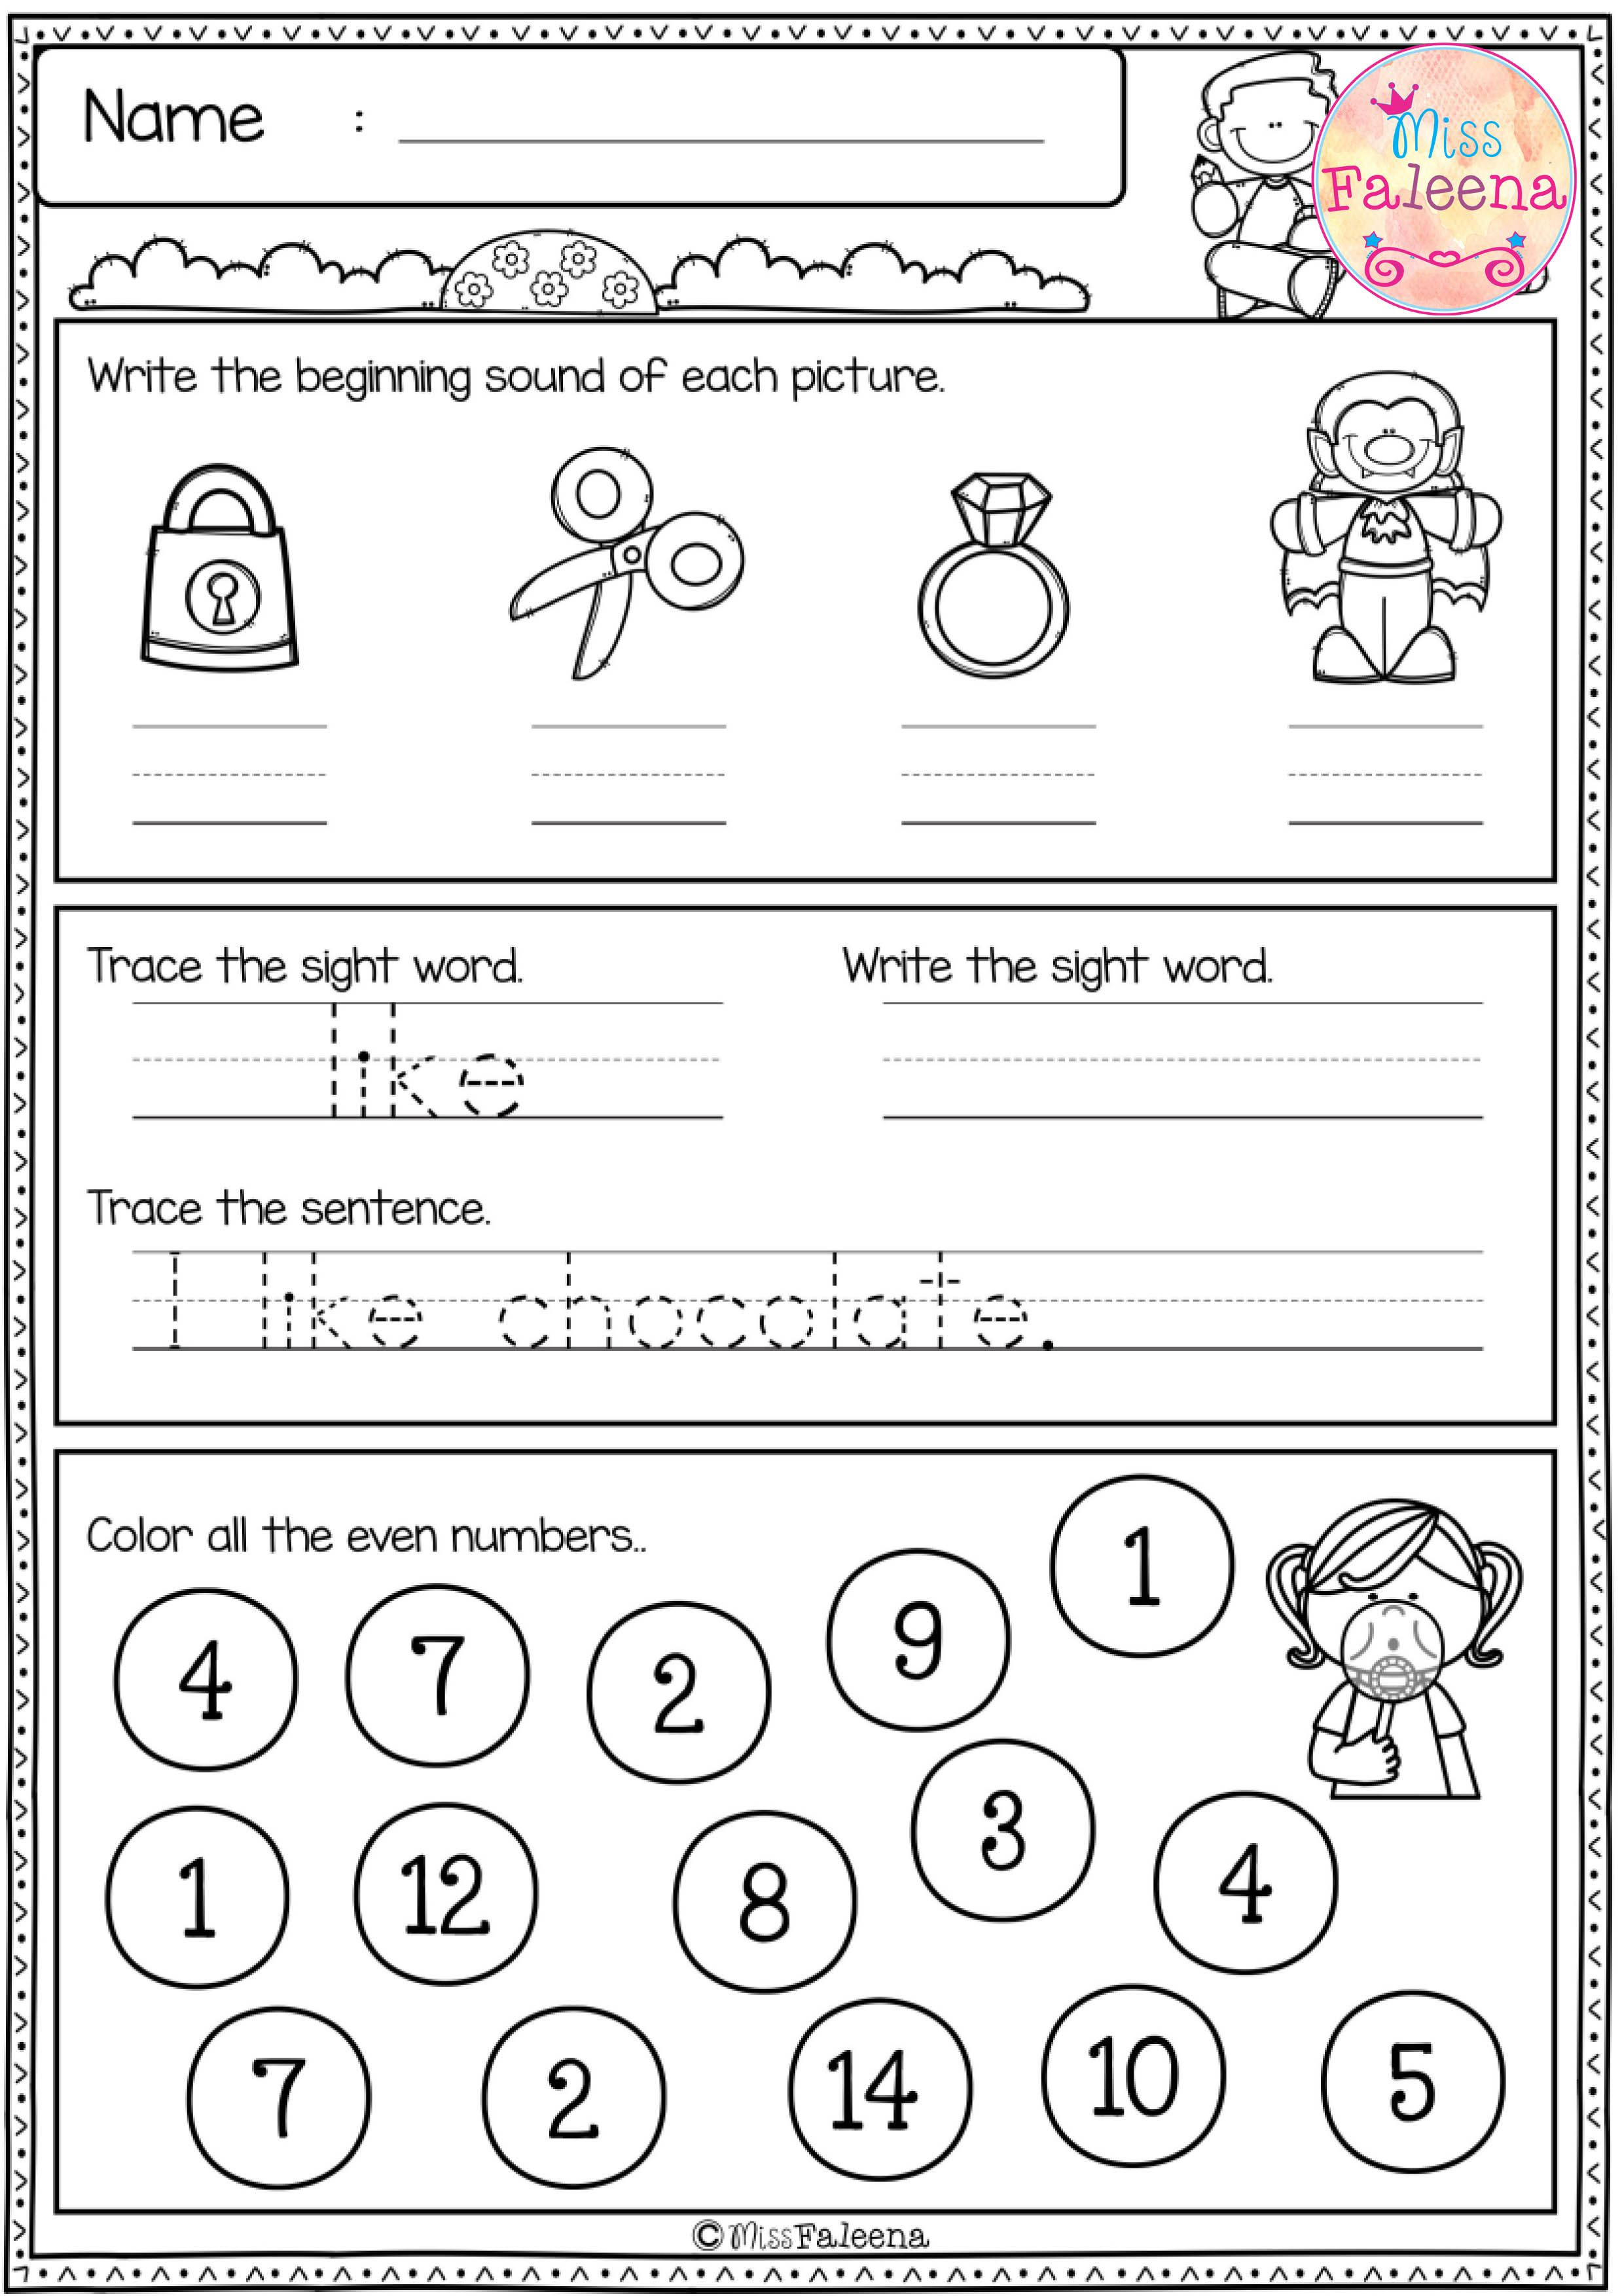 Free First Grade Morning Work Includes 20 Pages Of Morning Work Activitie Kindergarten Math Worksheets Free Kindergarten Math Worksheets First Grade Worksheets